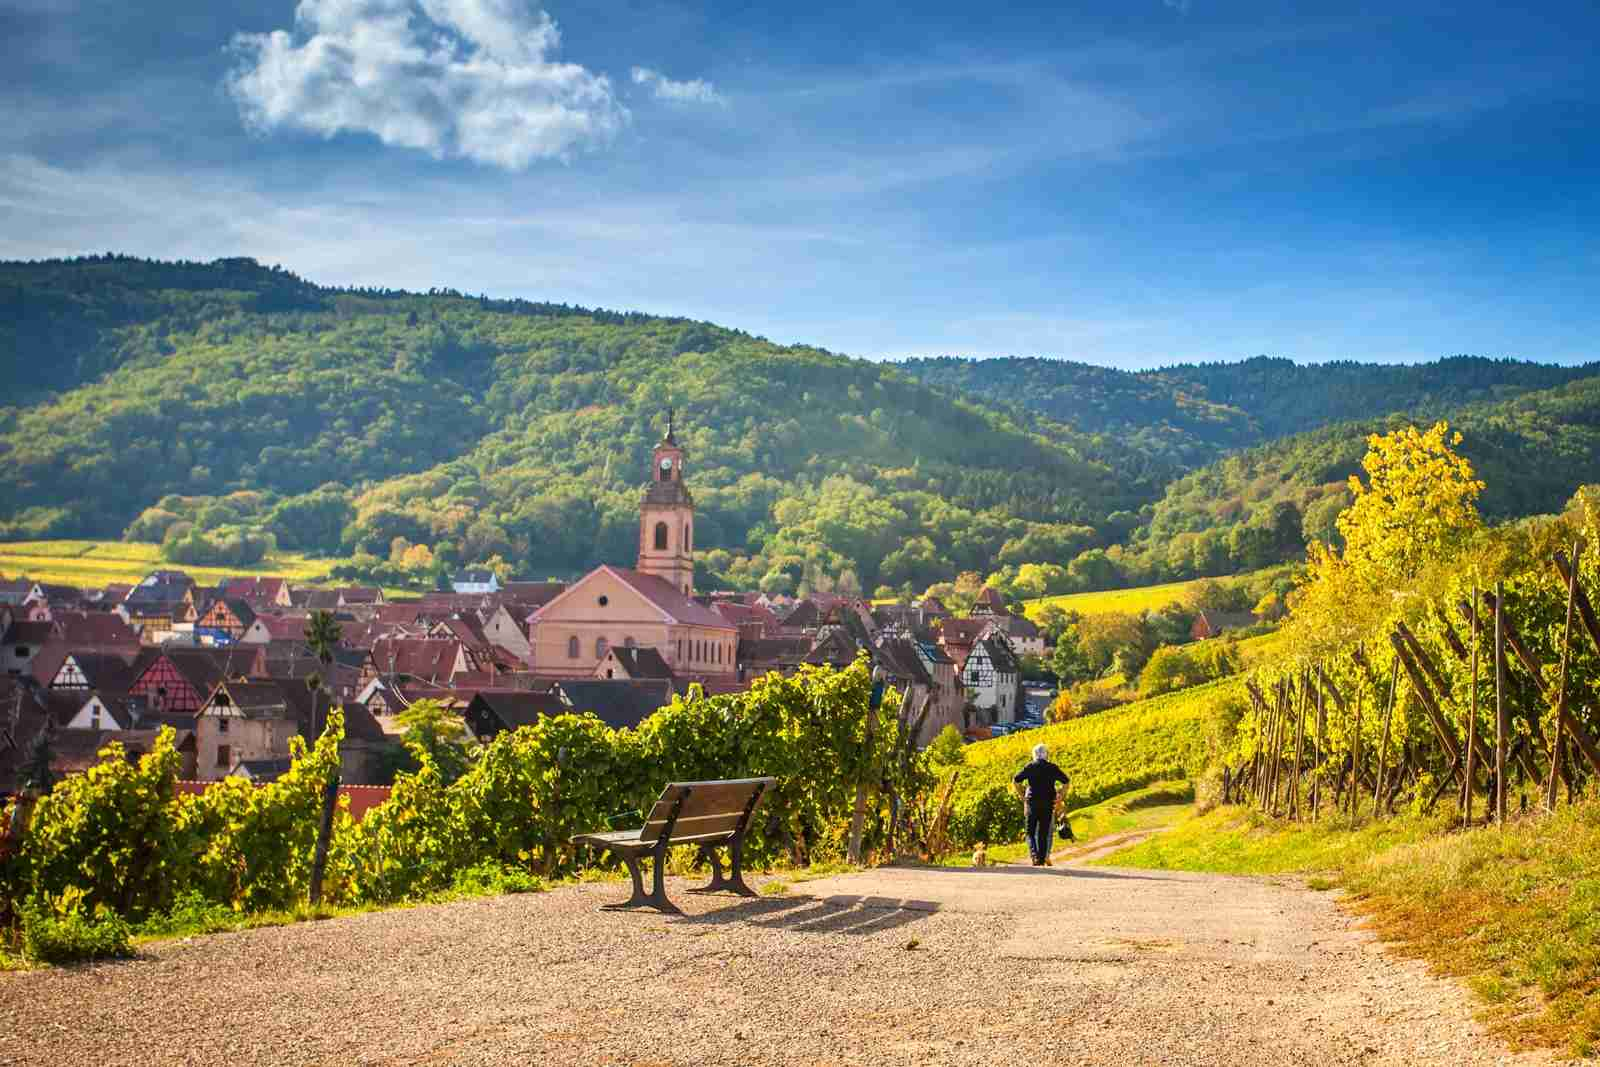 Riquewihr, Alsace, France. (Photo by Kirill Rudenko/Getty Images)